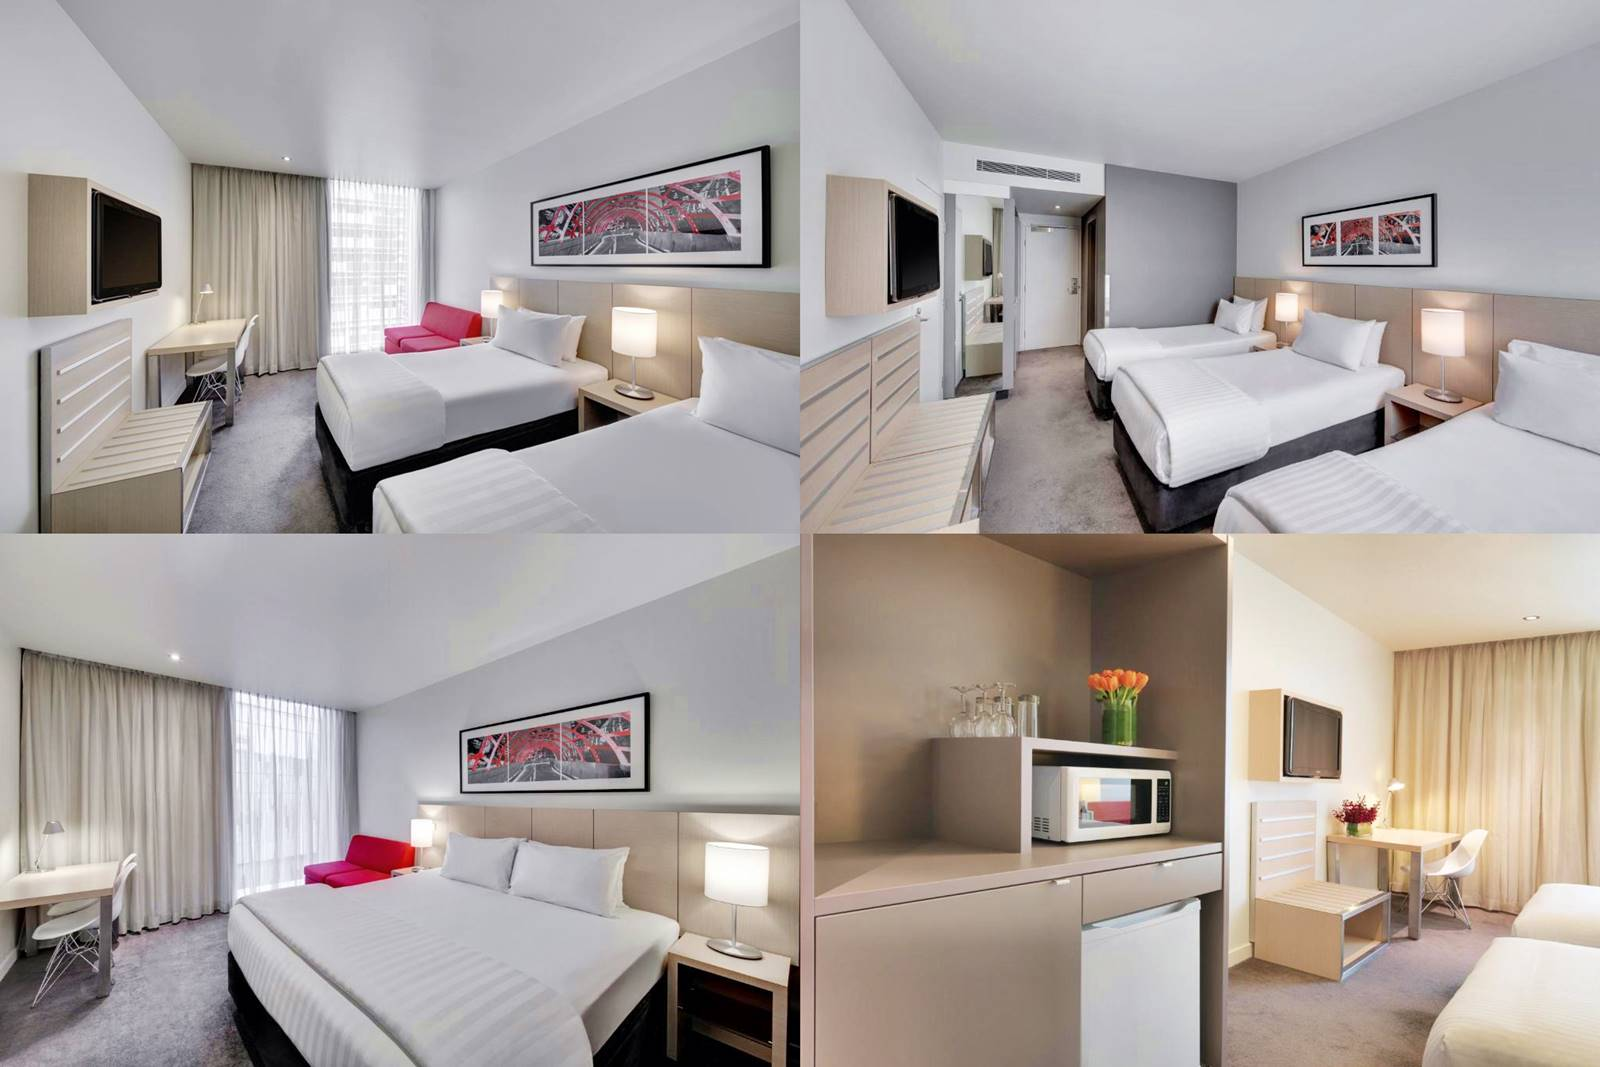 Melbourne-Accommodation-Recommendation-Hotel-Apartment-Bed and Breakfast-Hostel-Travelodge Hotel Melbourne Docklands